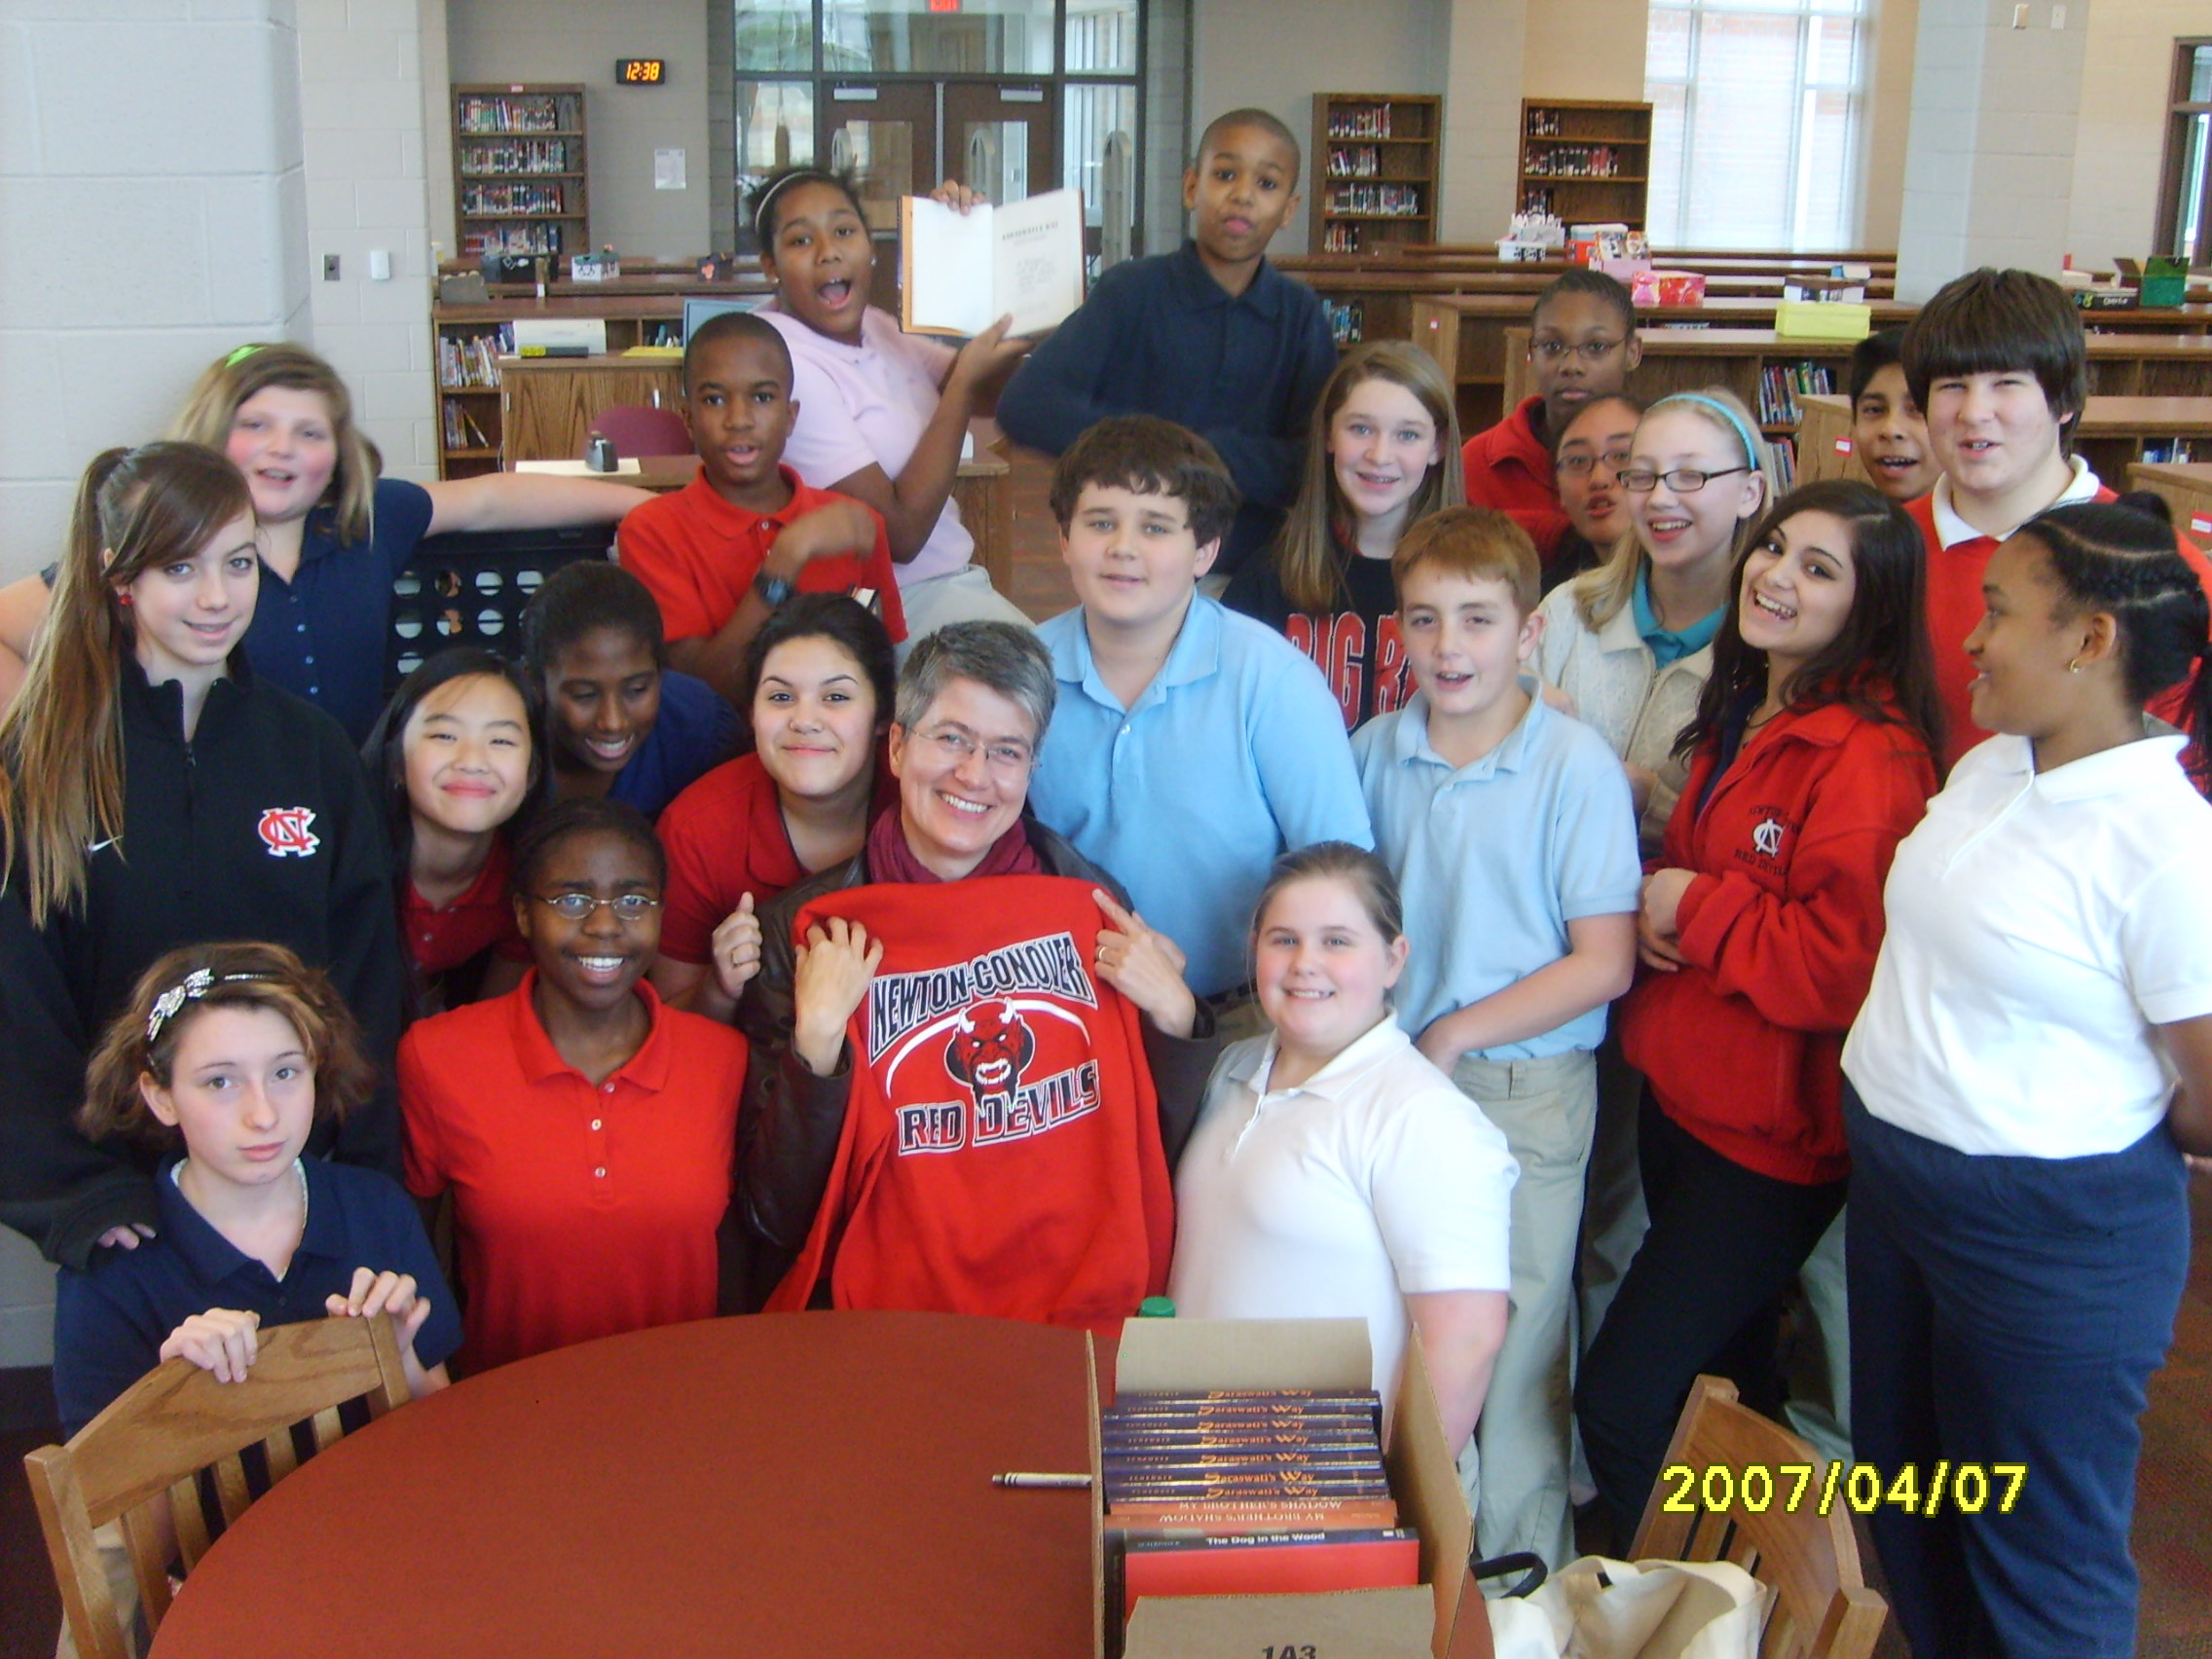 I had lunch with the Battle of the Books team and they gave me a 'Red Devils' sweatshirt.